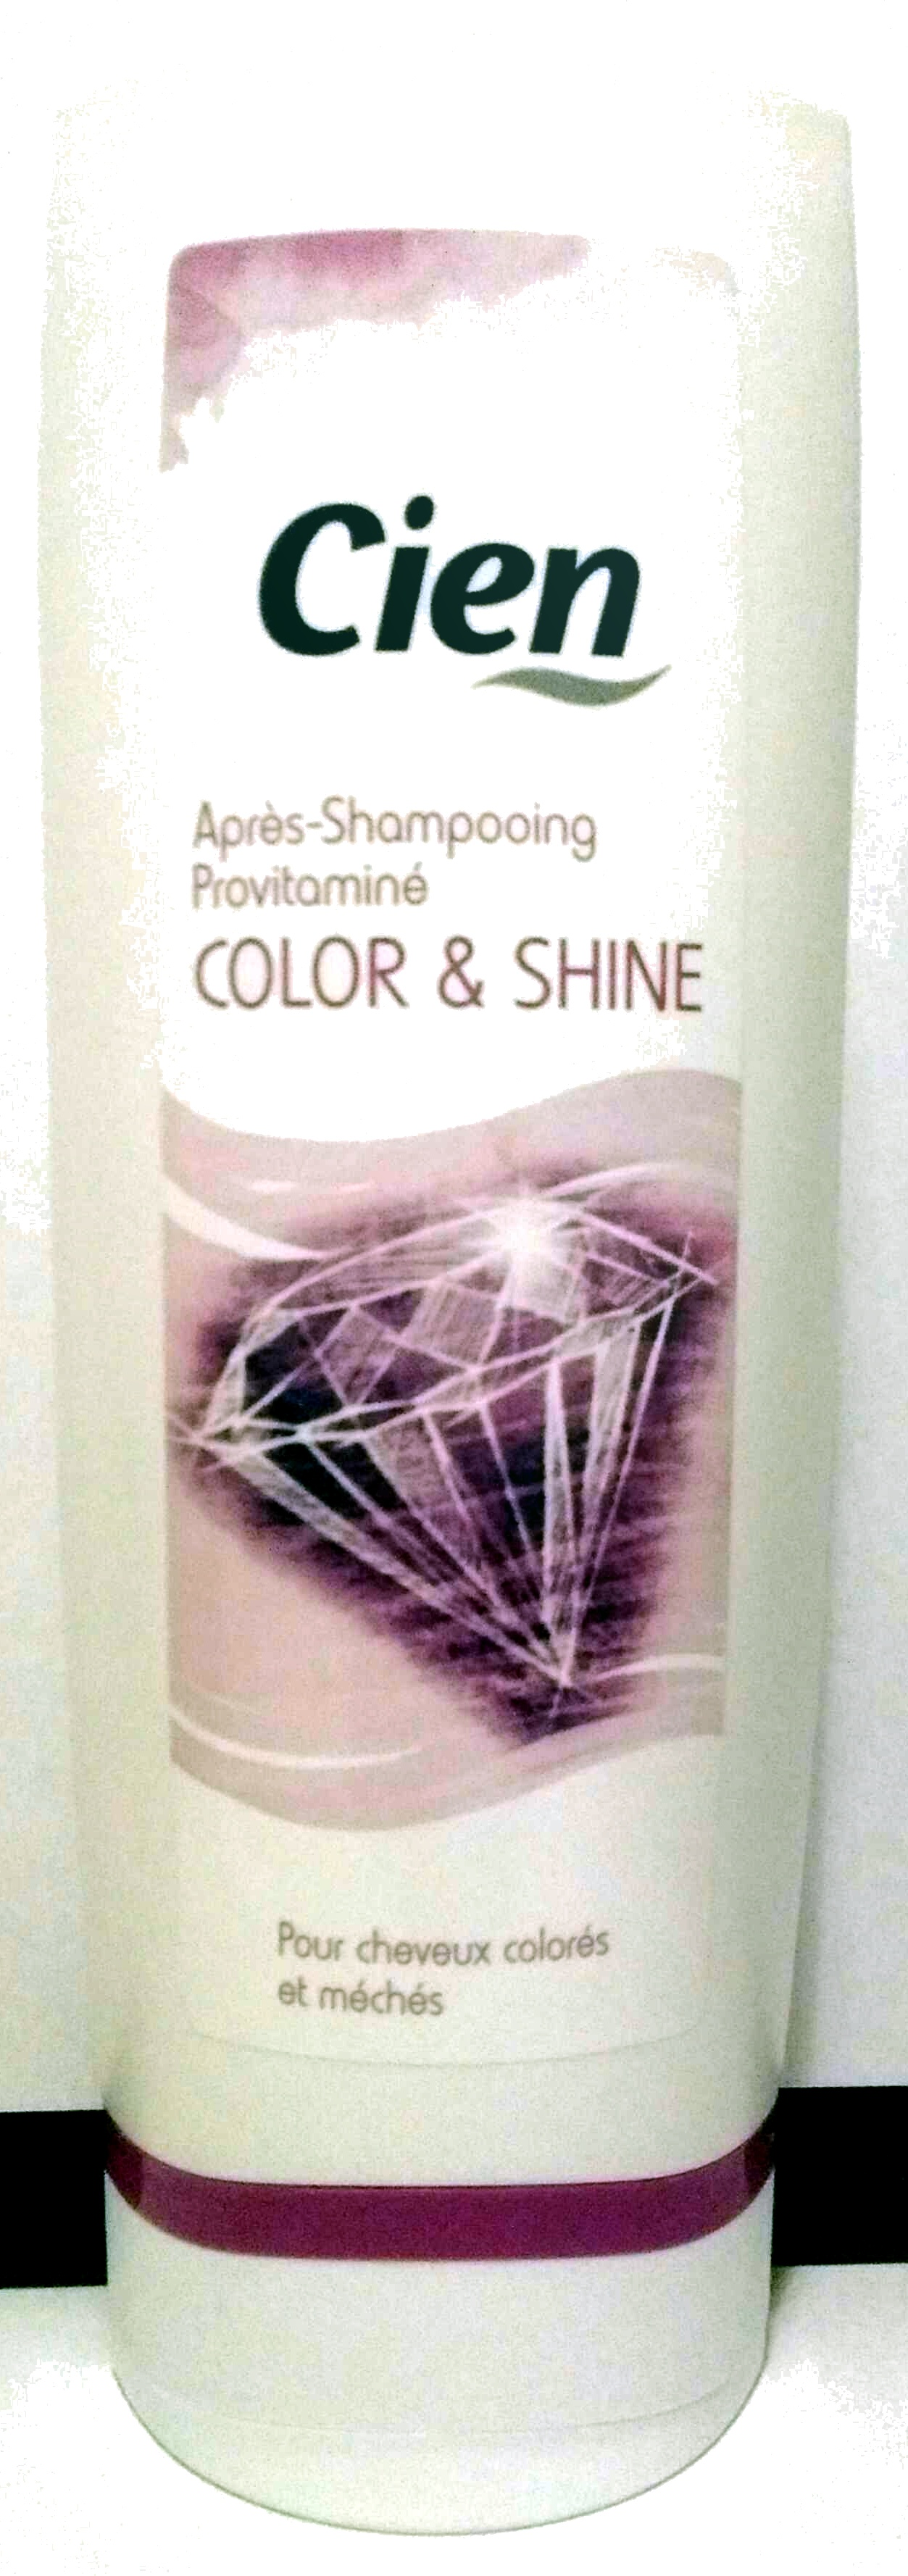 Après-shampooing provitaminé Color & Shine - Product